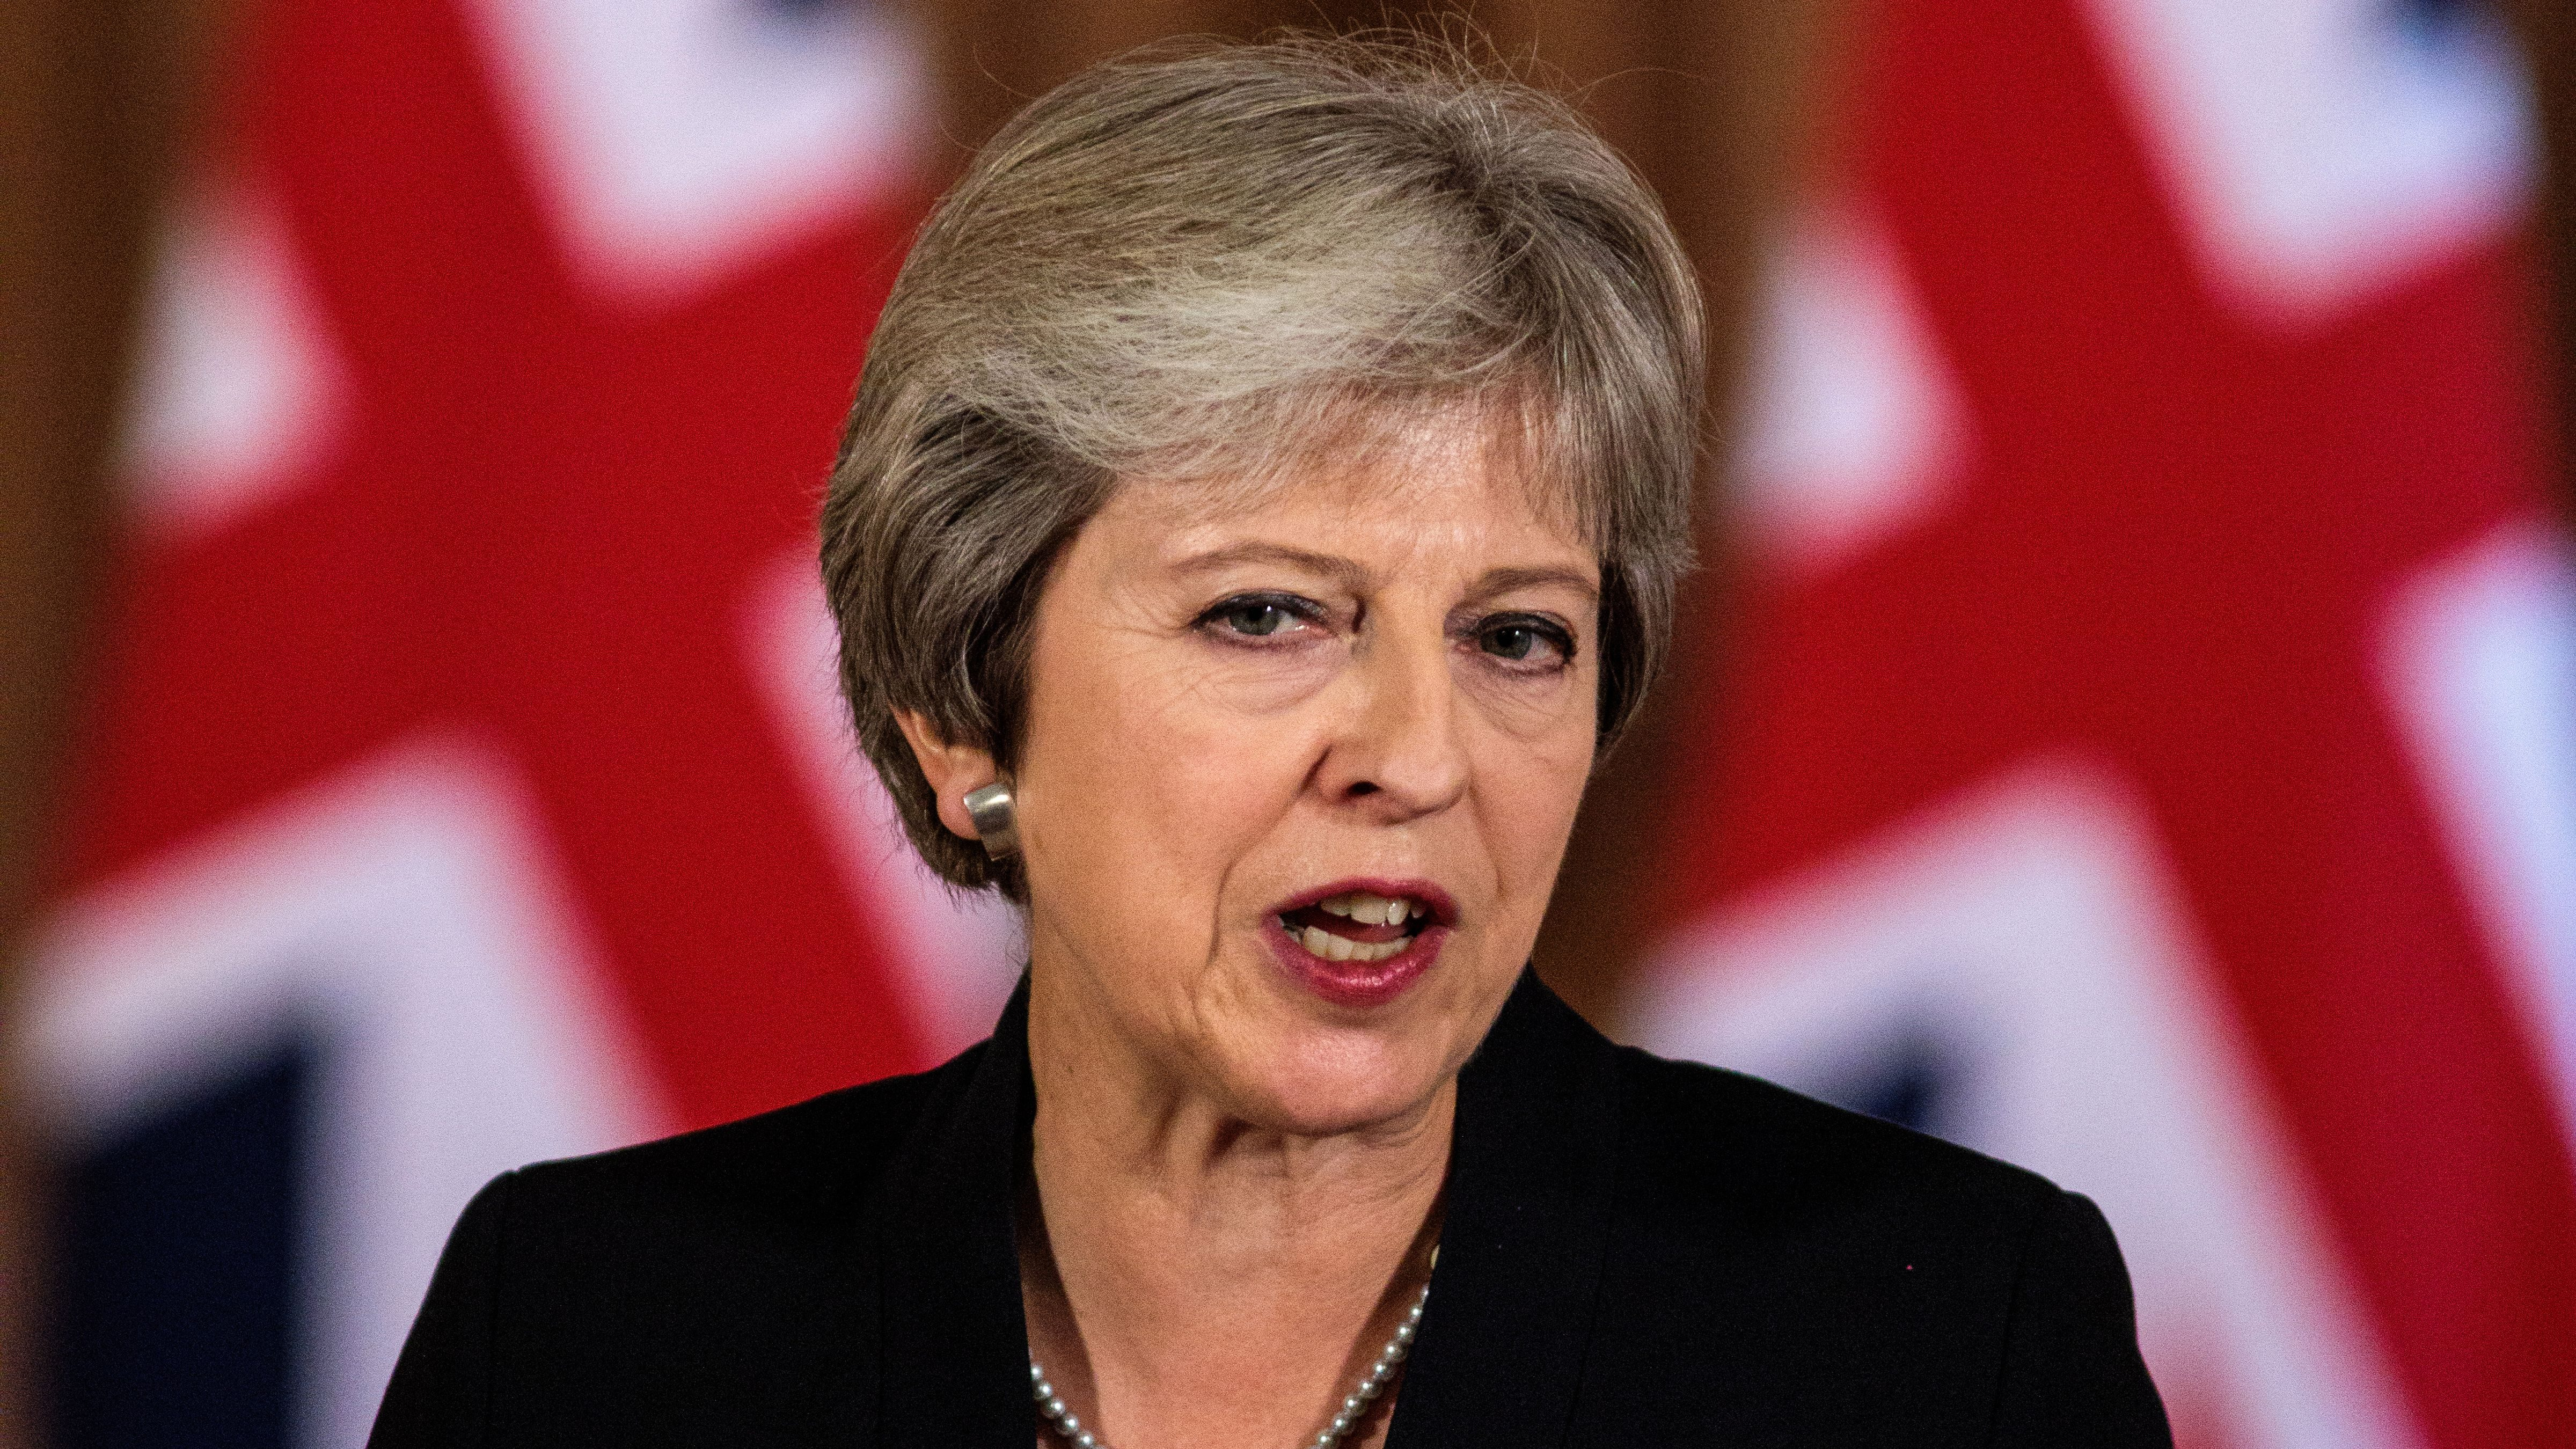 Britain's Prime Minister Theresa May makes a statement.